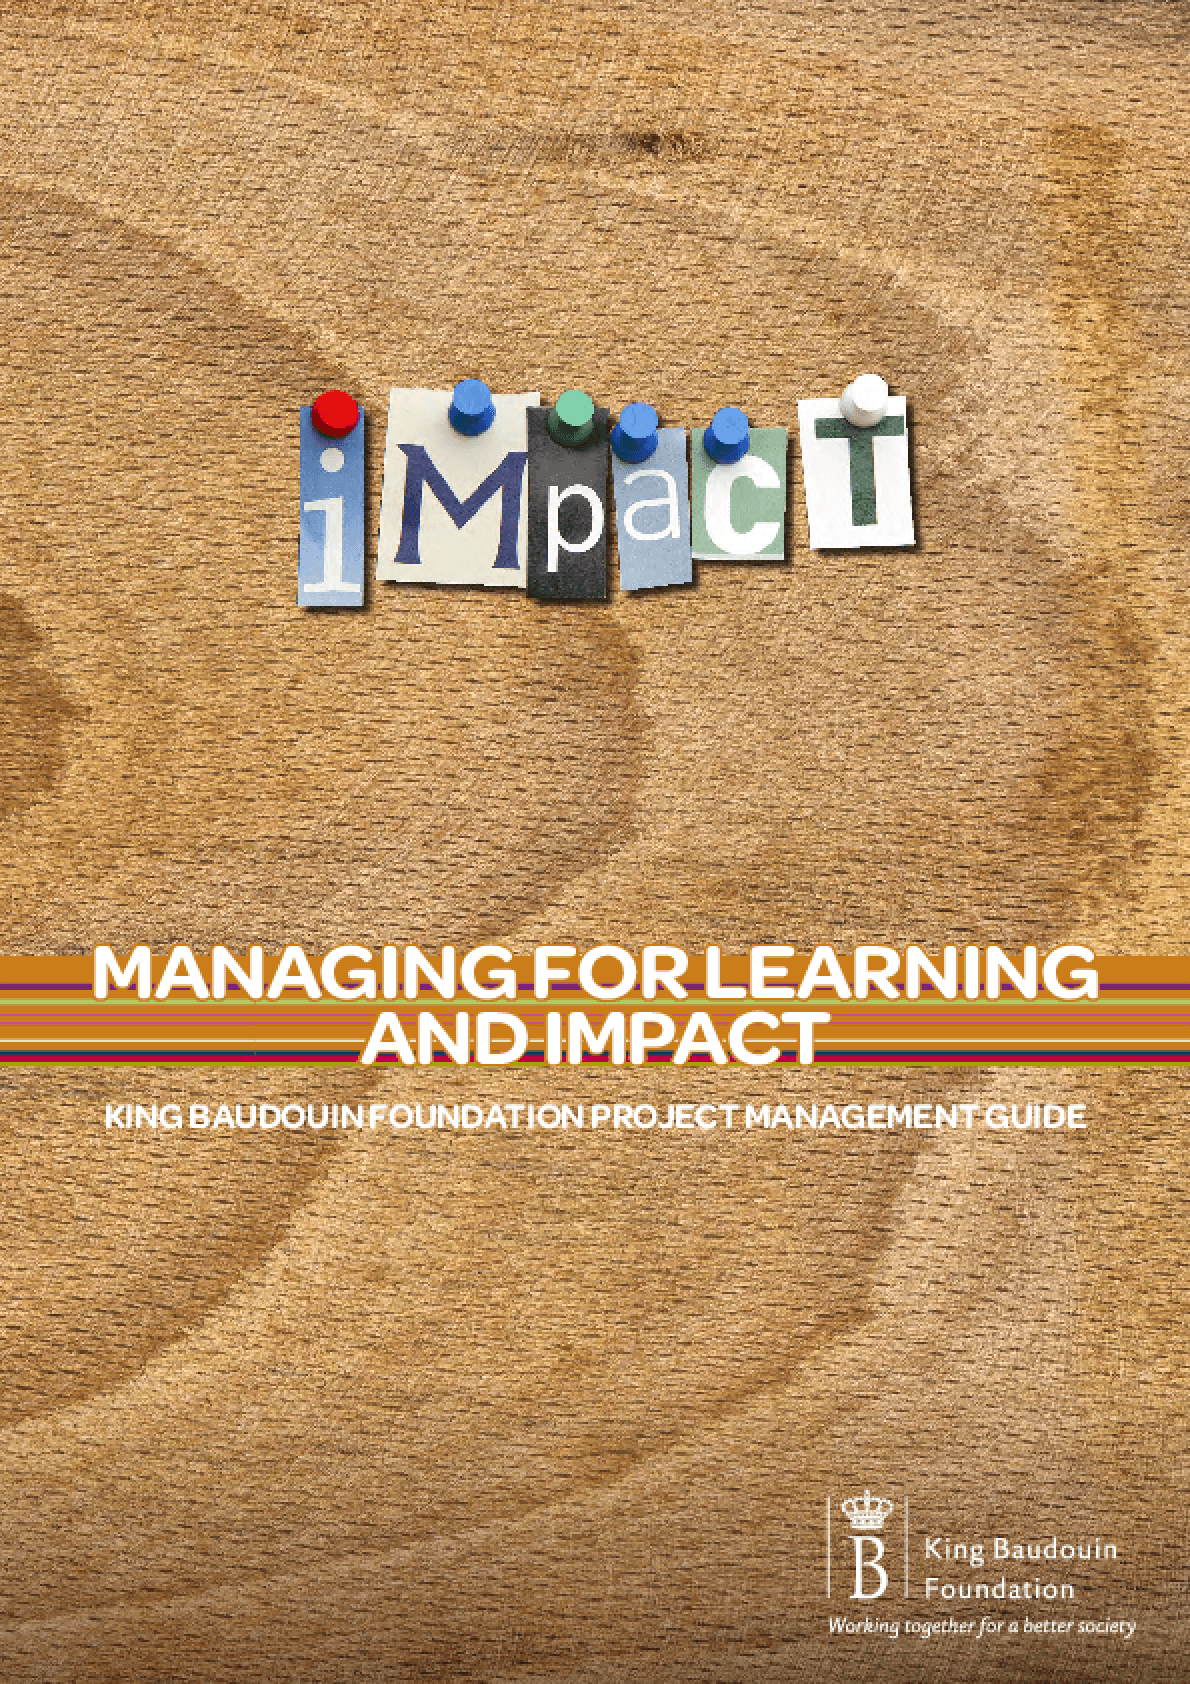 Managing for Learning and Impact